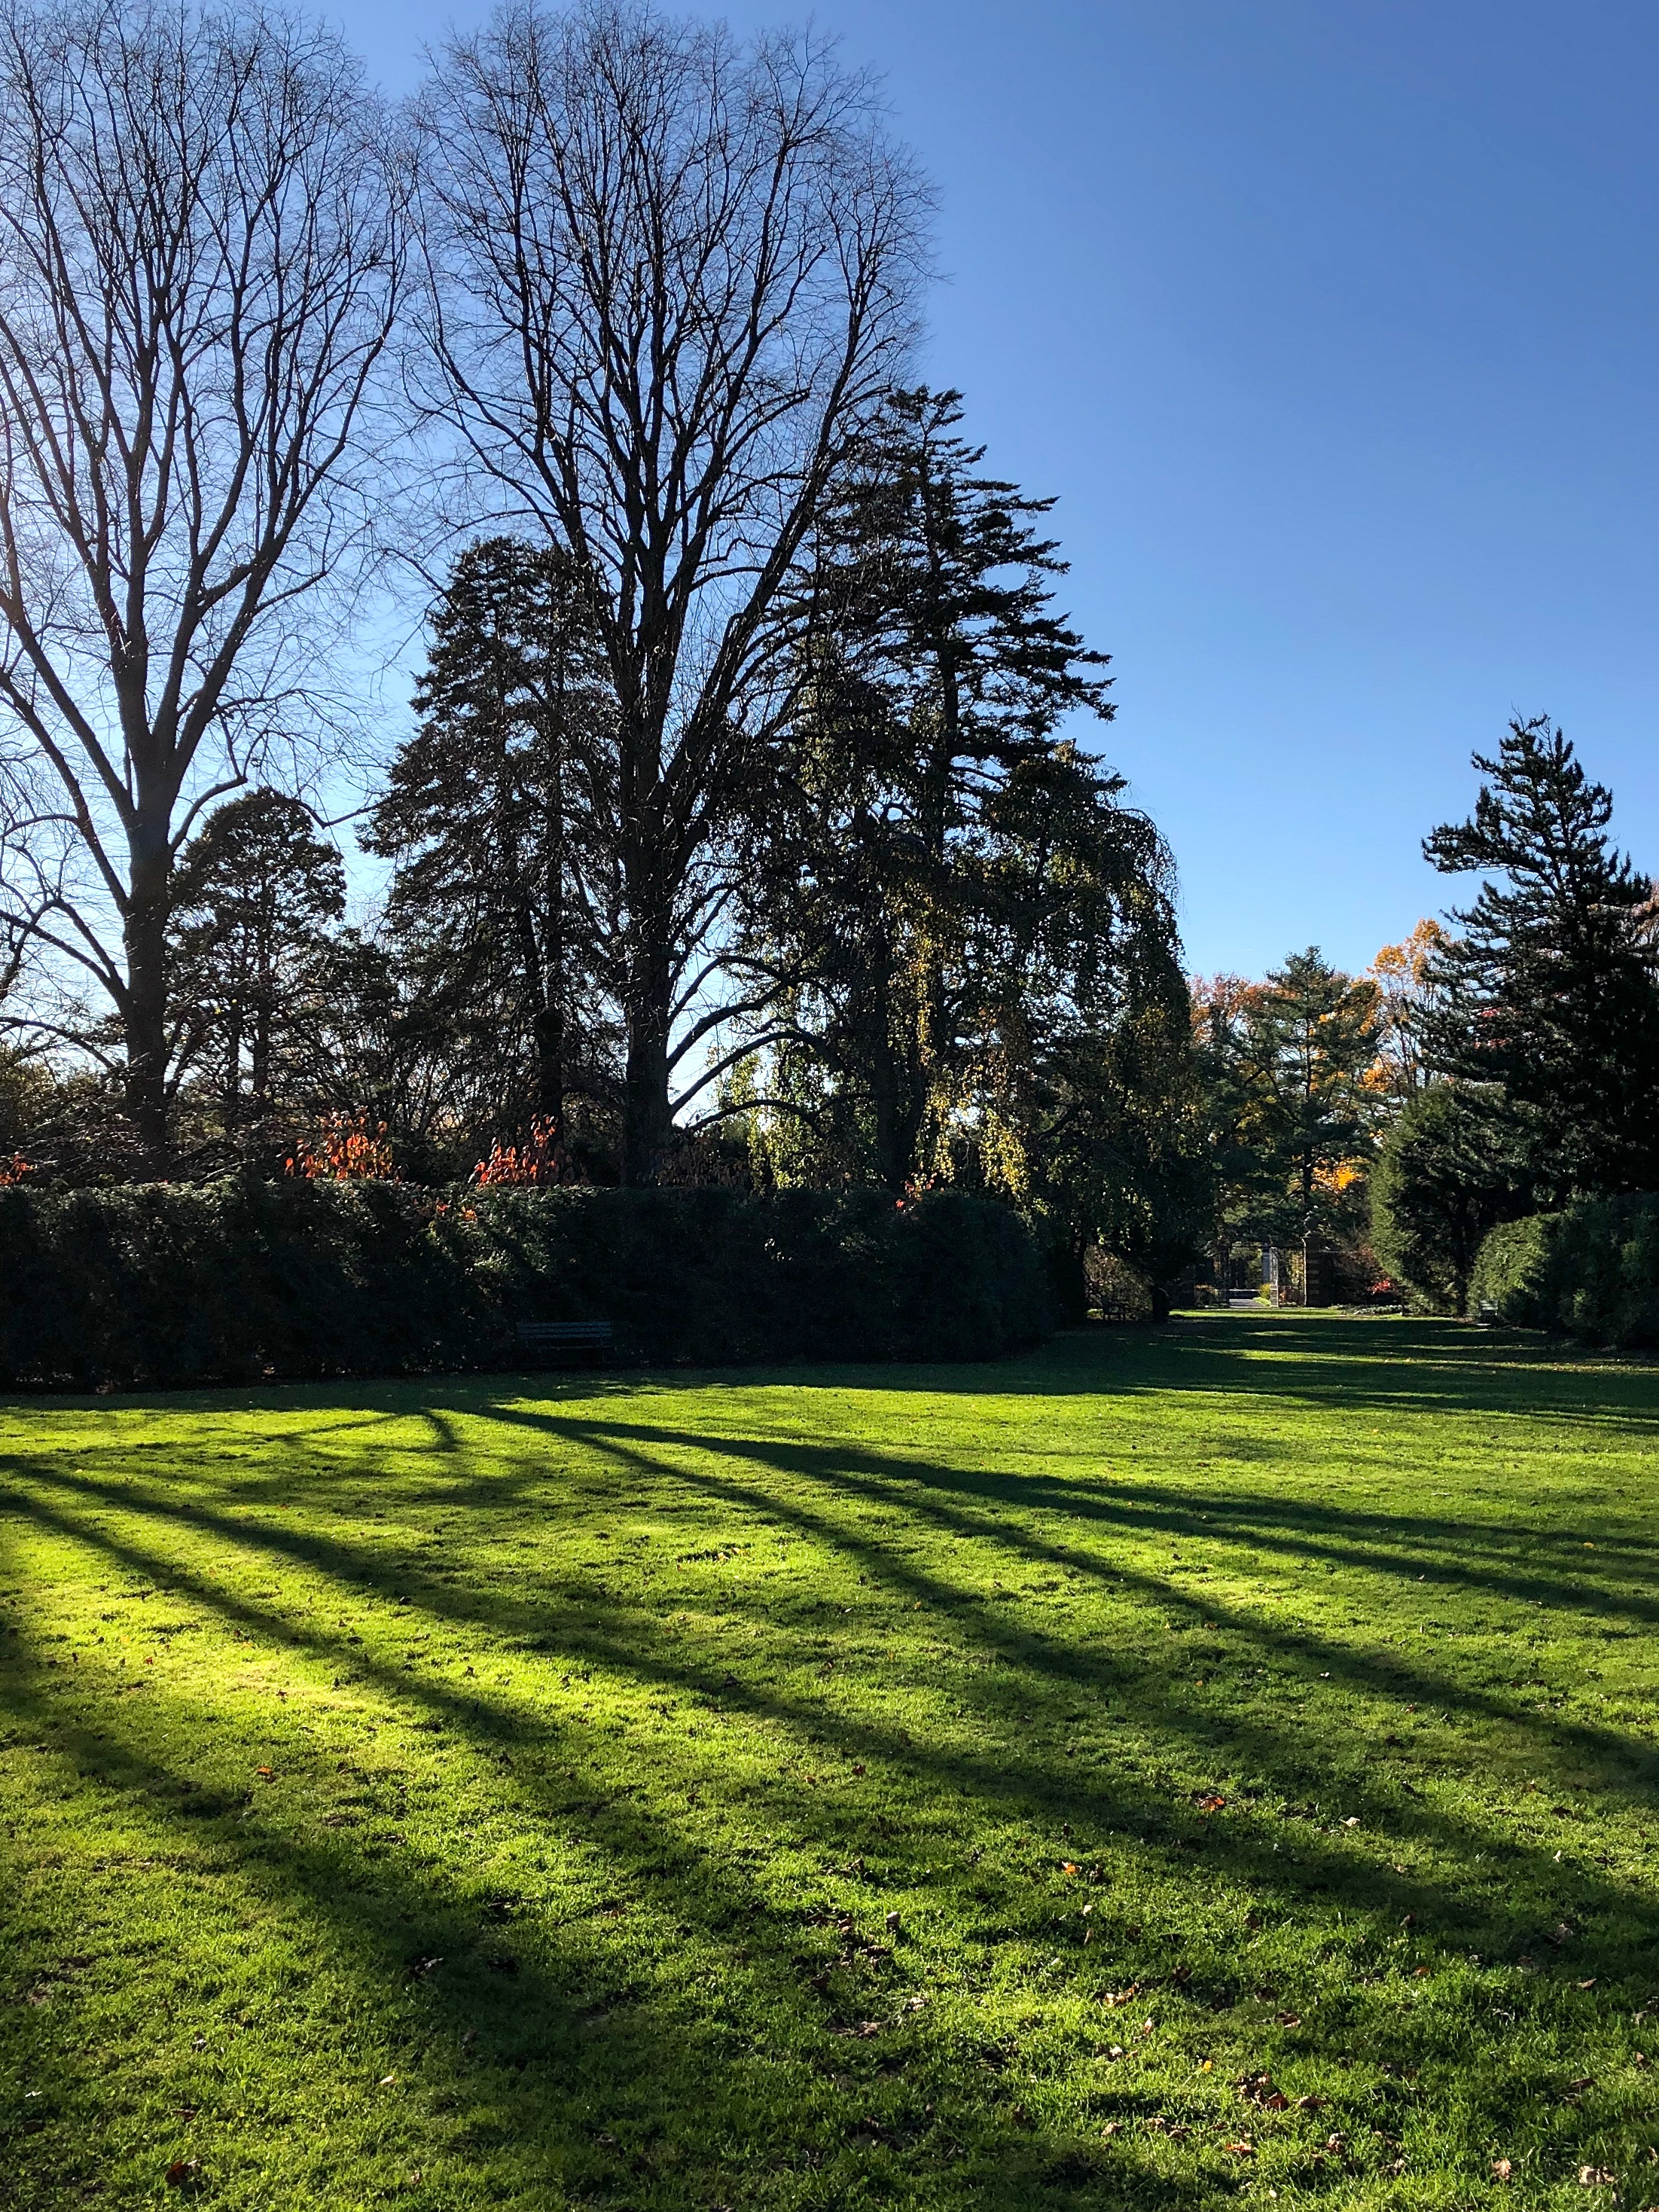 __@ Lawn backyard_Old Westbury Gardens_11.11.18.jpg